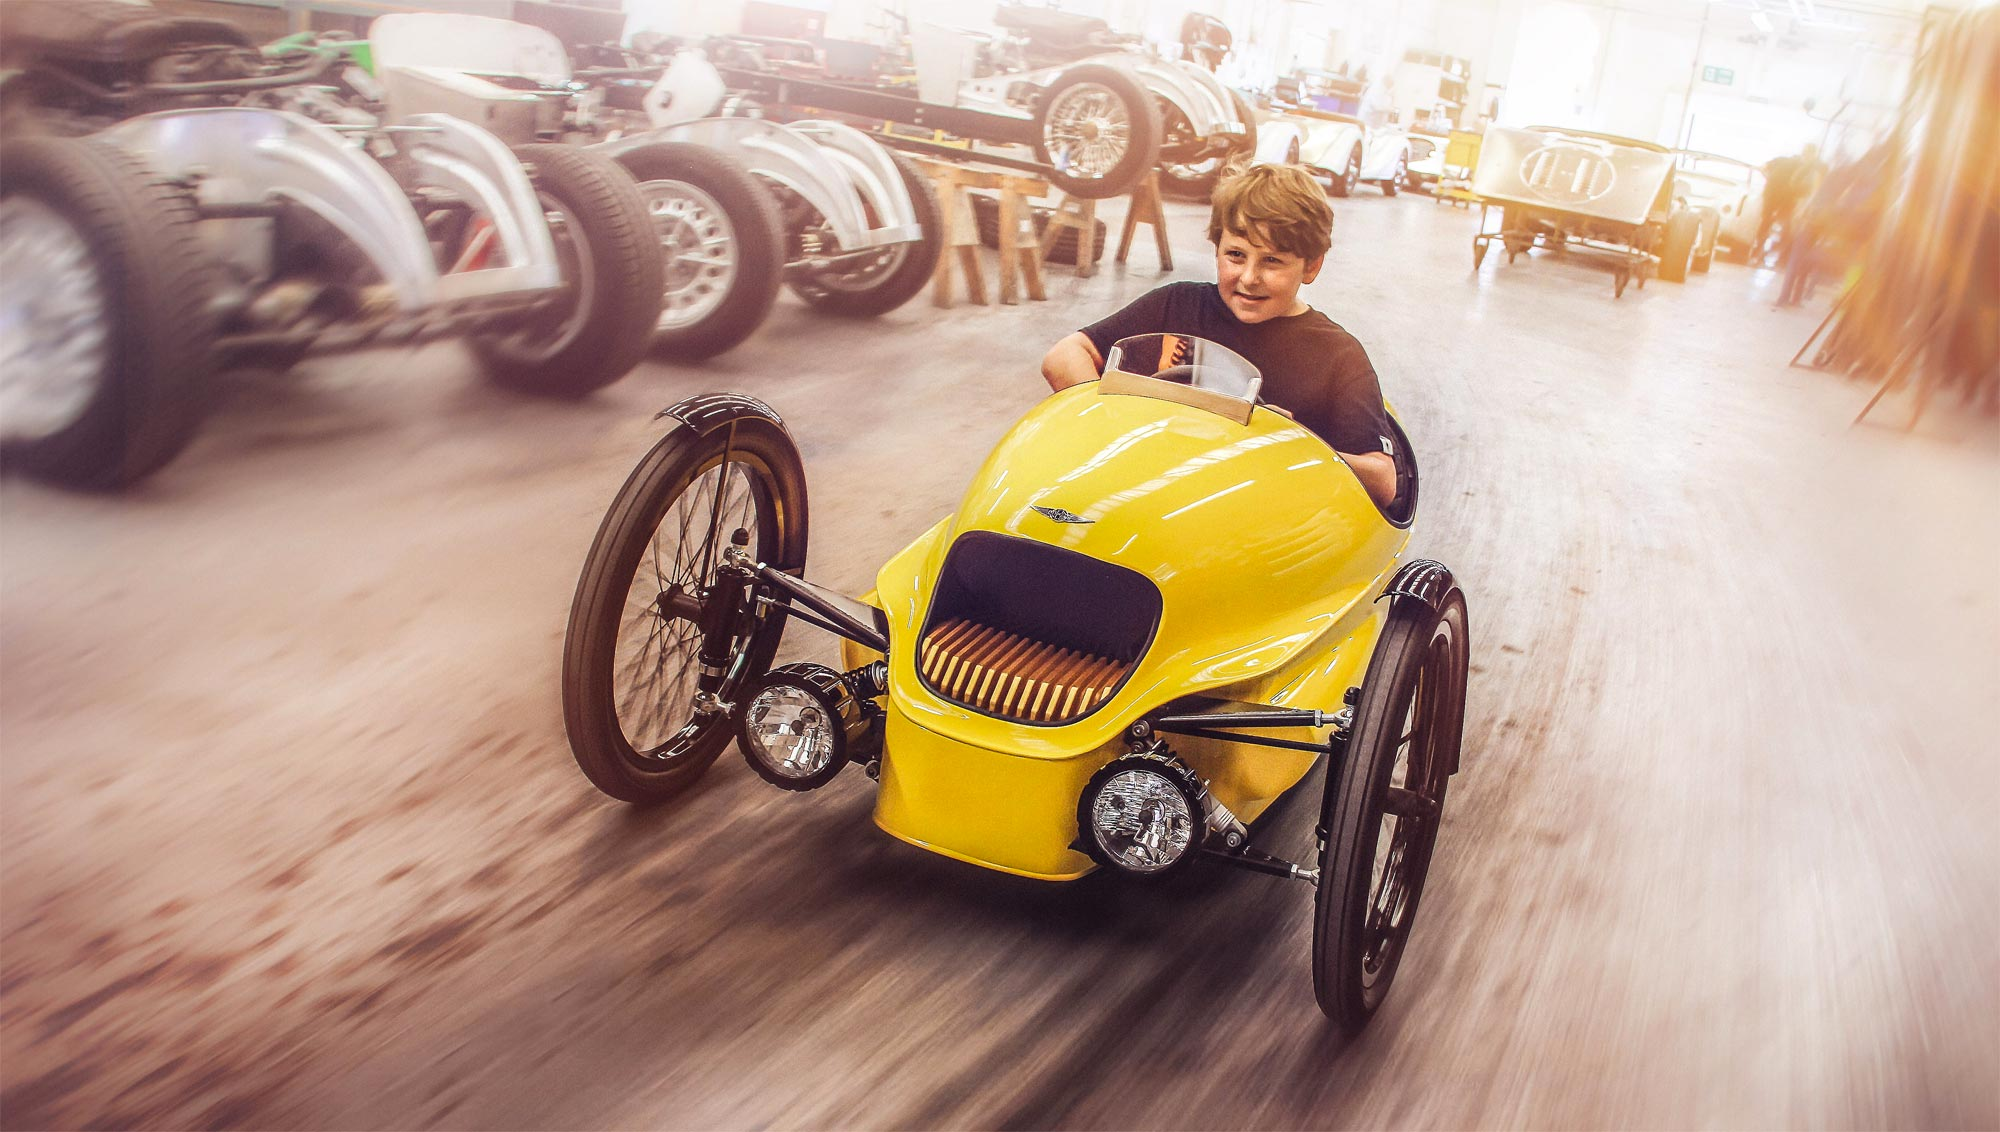 Morgan's EV3 Junior Offers Children The Chance To Experience Automotive Excellence